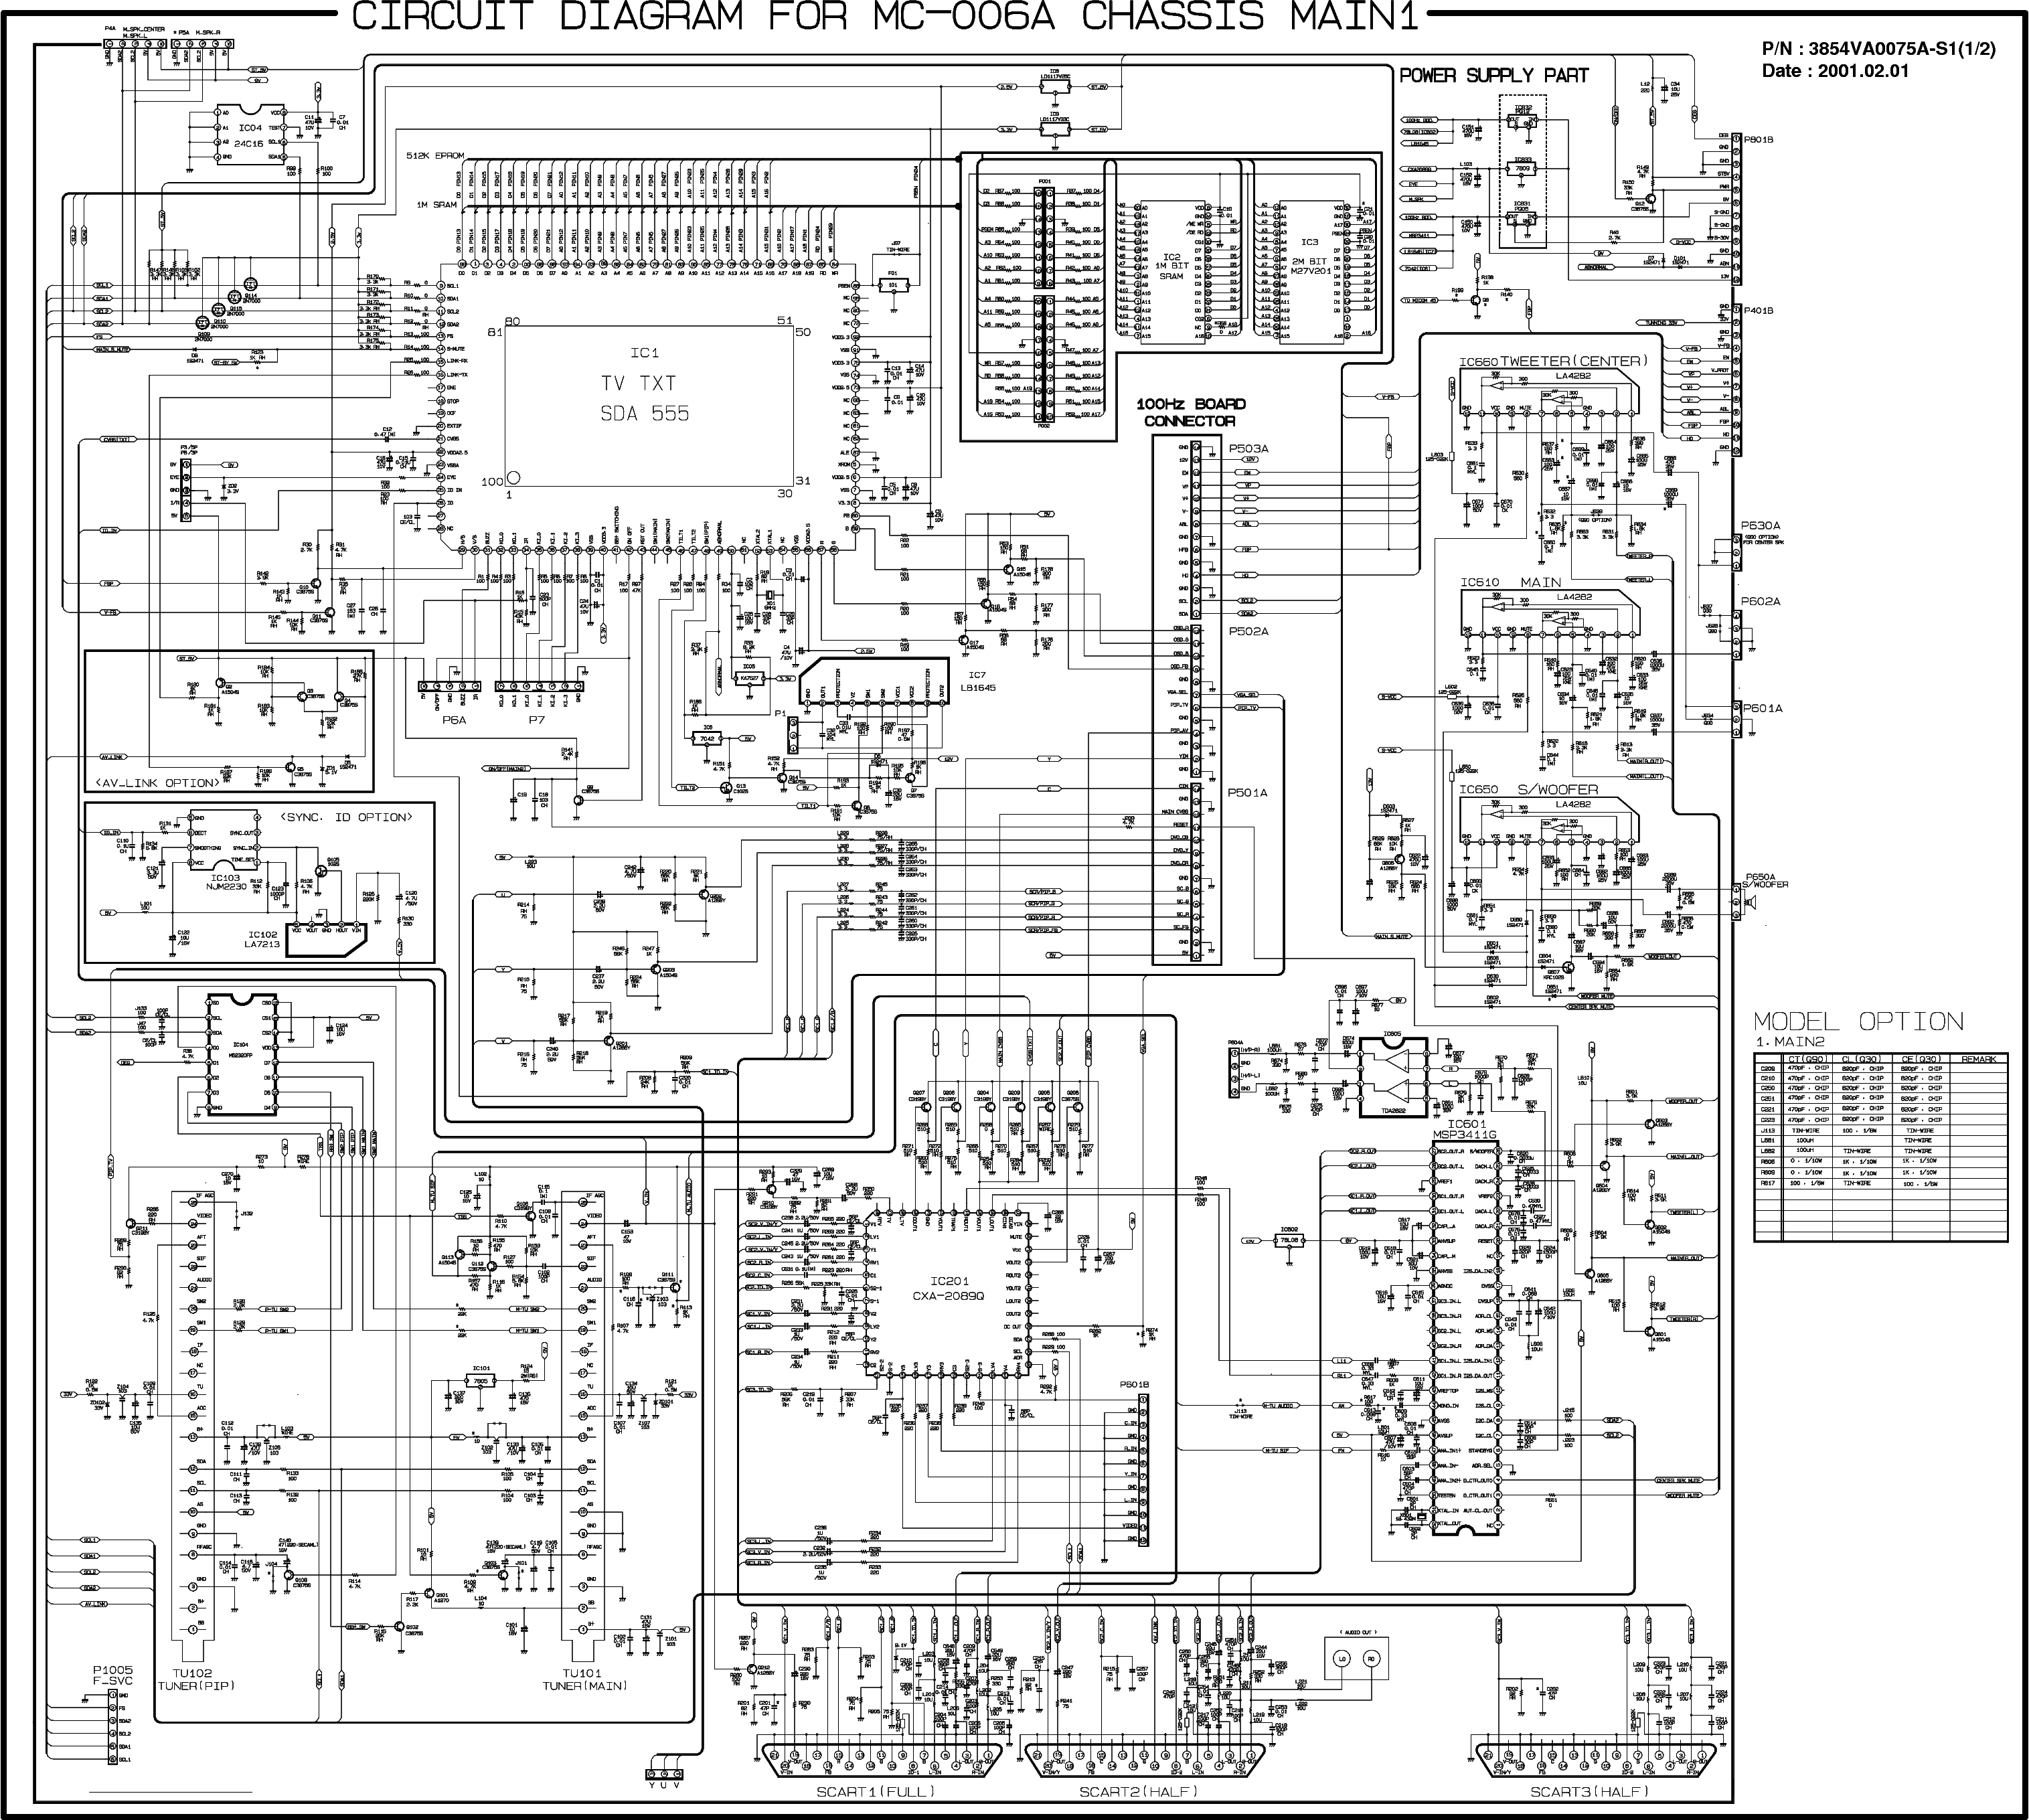 LG CHASSIS MC-006A SCH Service Manual download, schematics